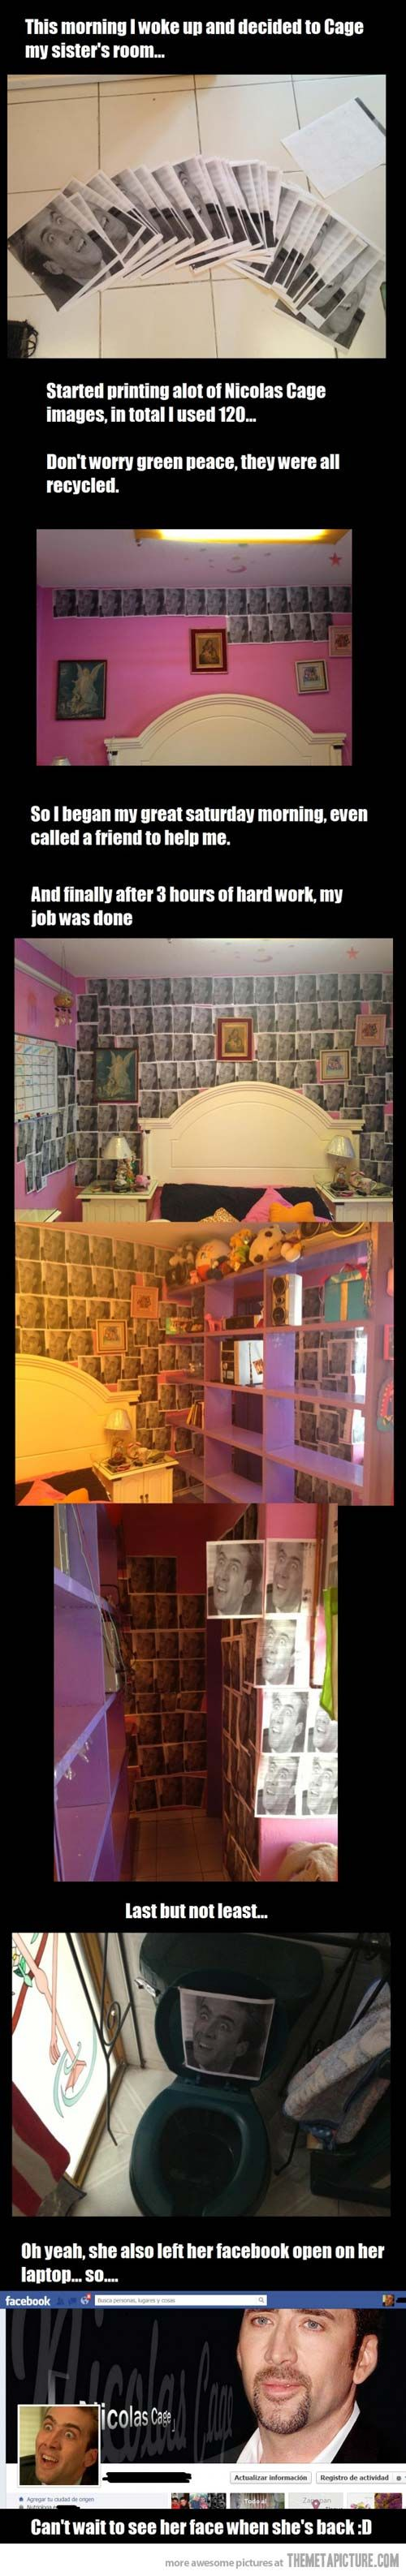 Evil brother Cages his sisters room cheap Pranks at…